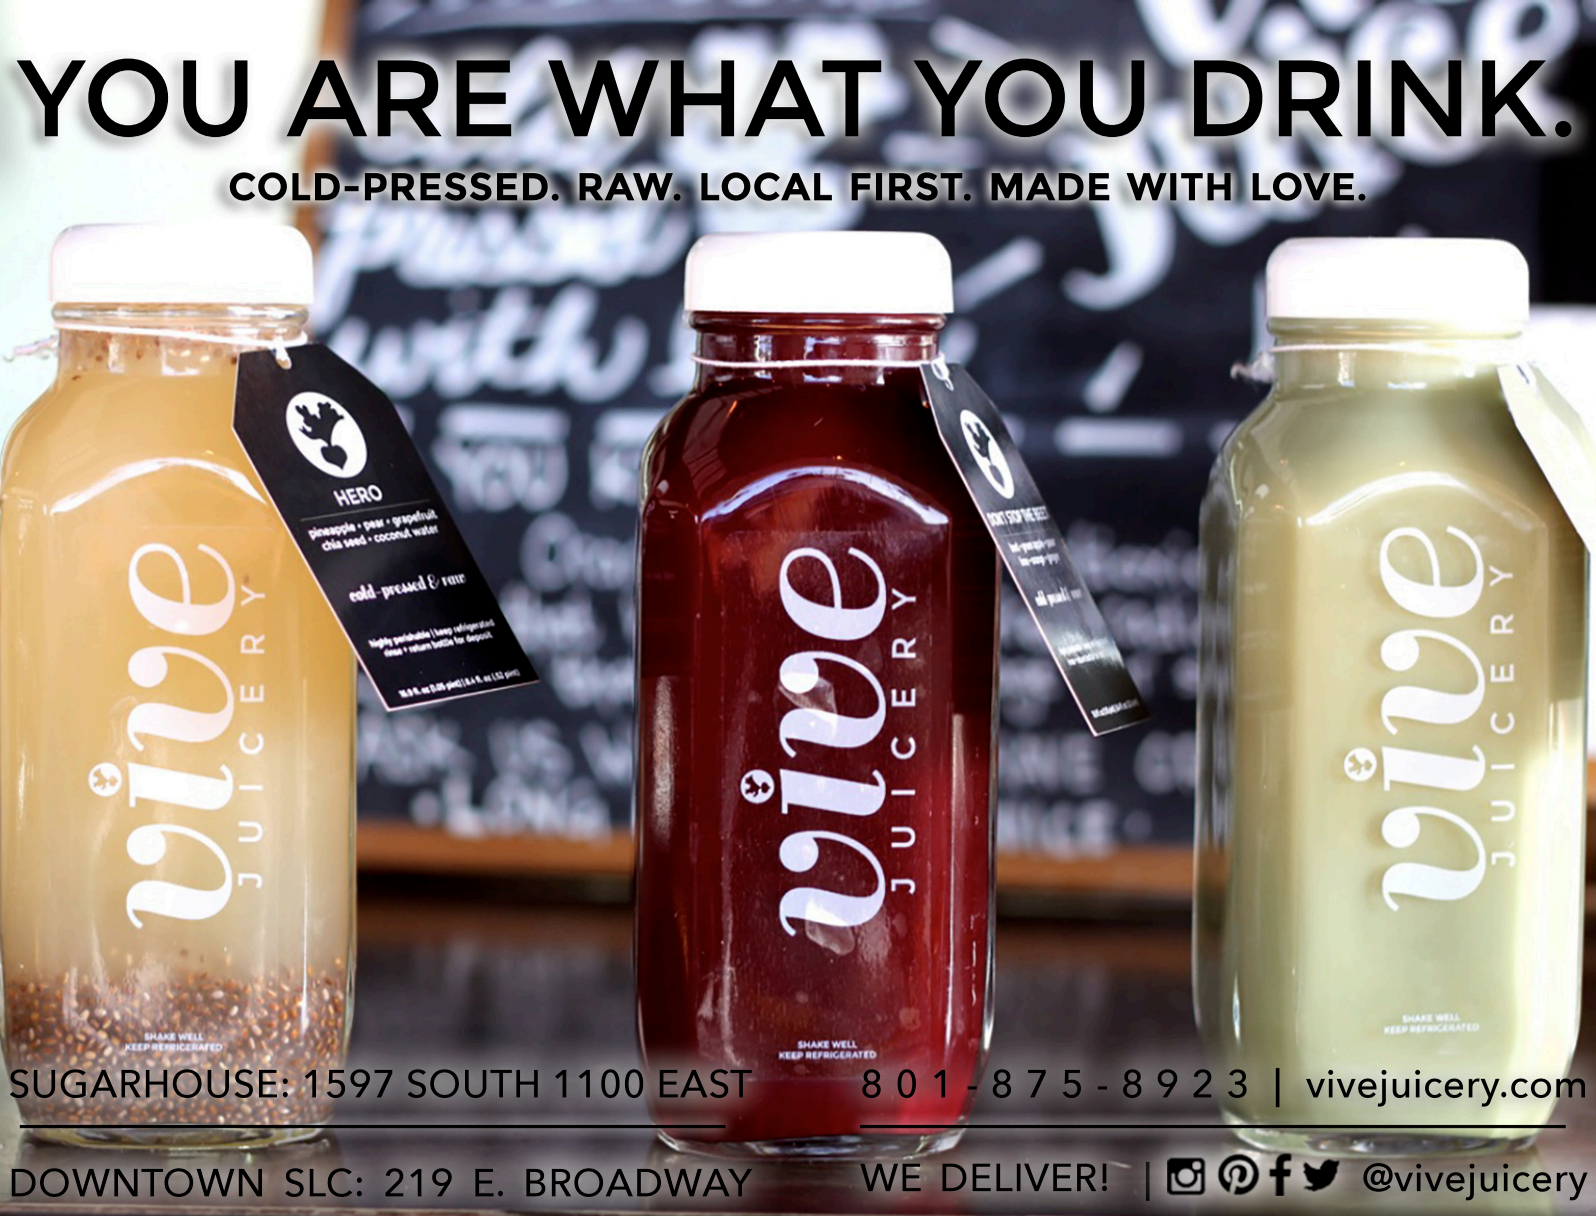 vivejuicery